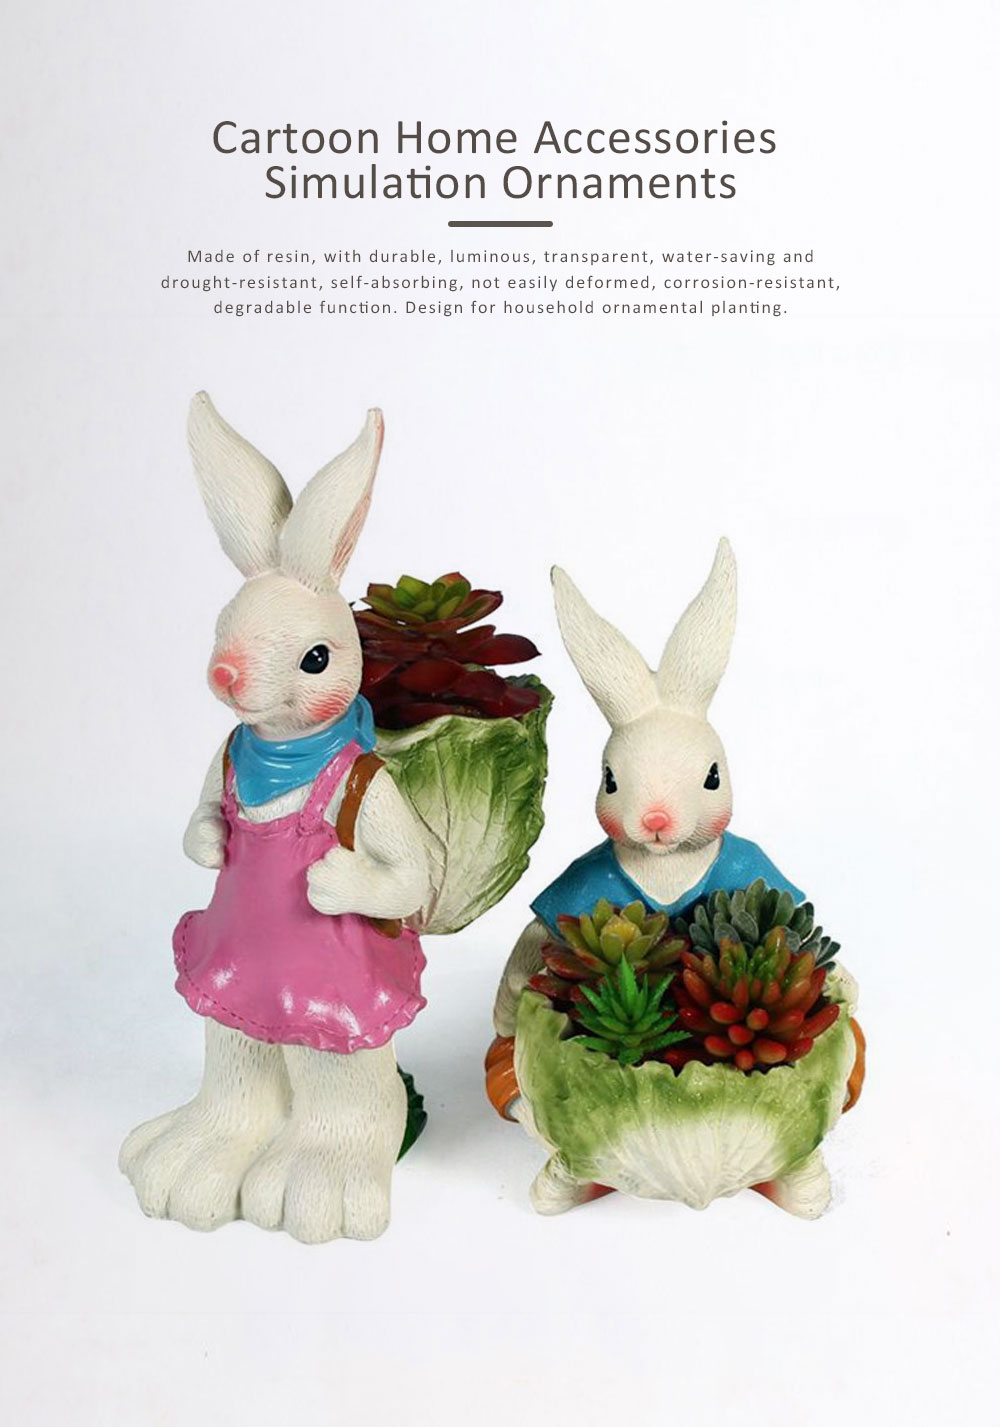 Cartoon Bunny Resin Handicraft, Home Accessories Simulation Ornaments for Garden Courtyard, Living Room, Balcony, Office 0